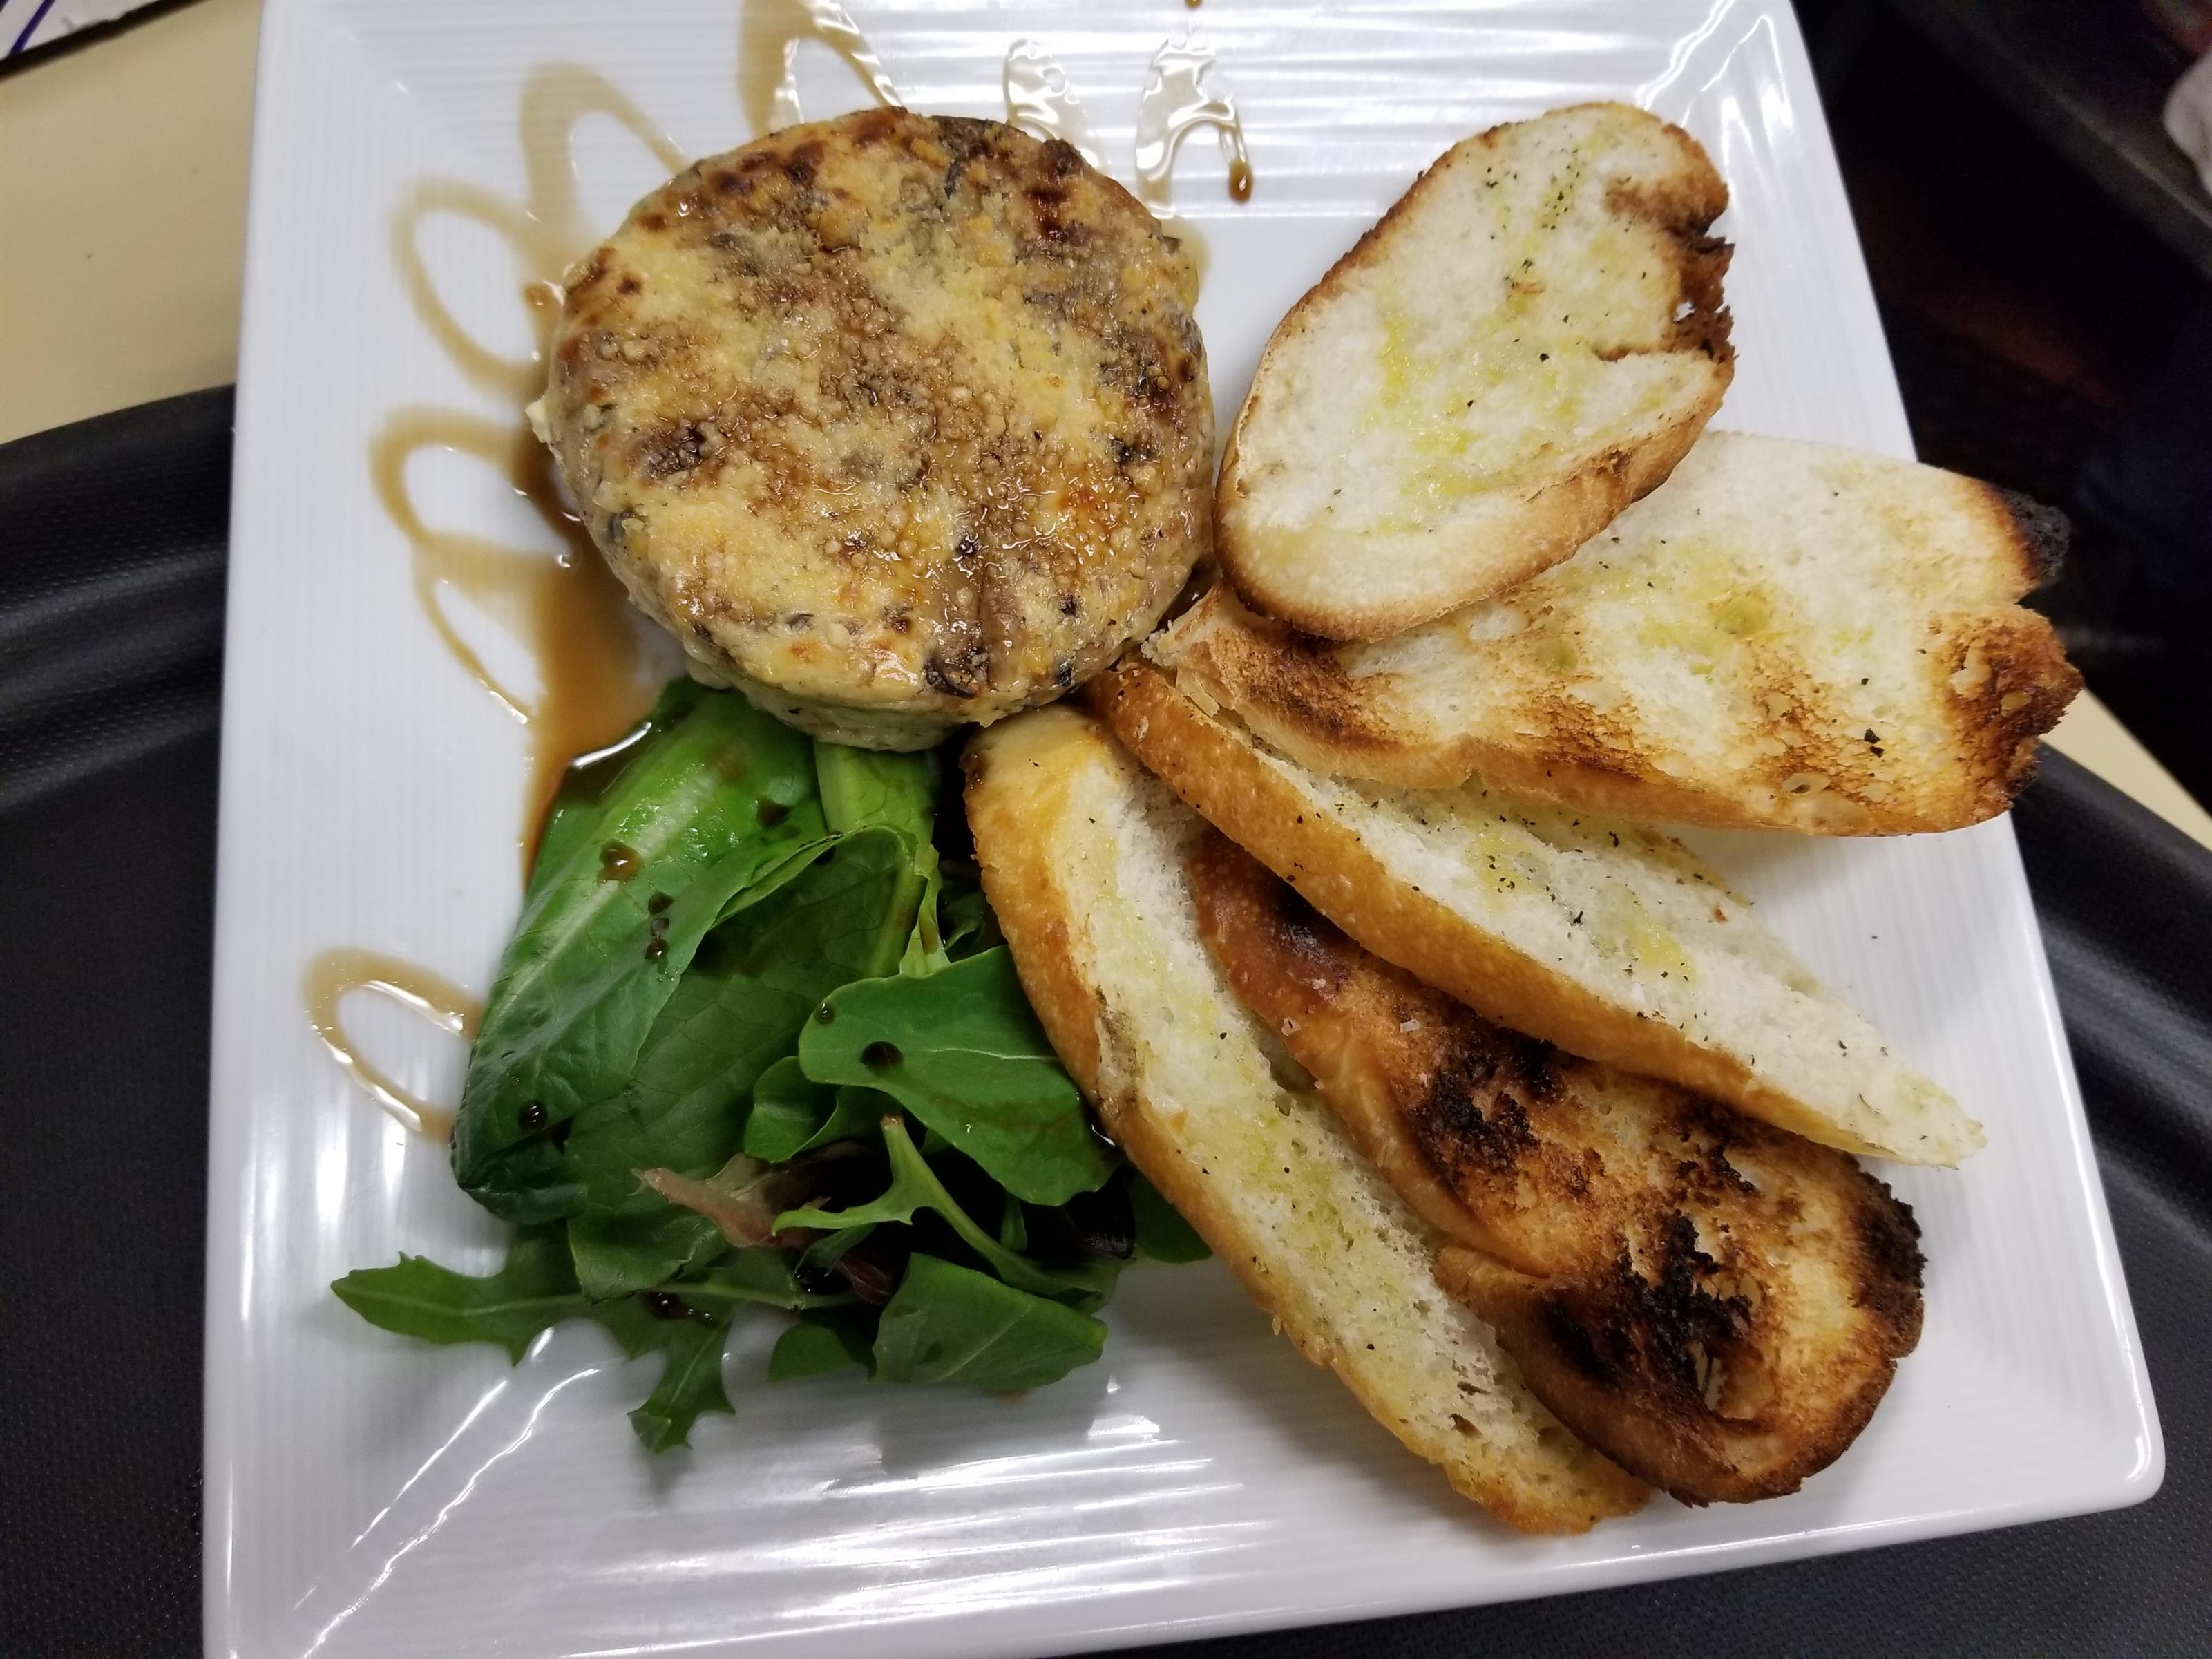 Grilled eggplant with crustini and arugula